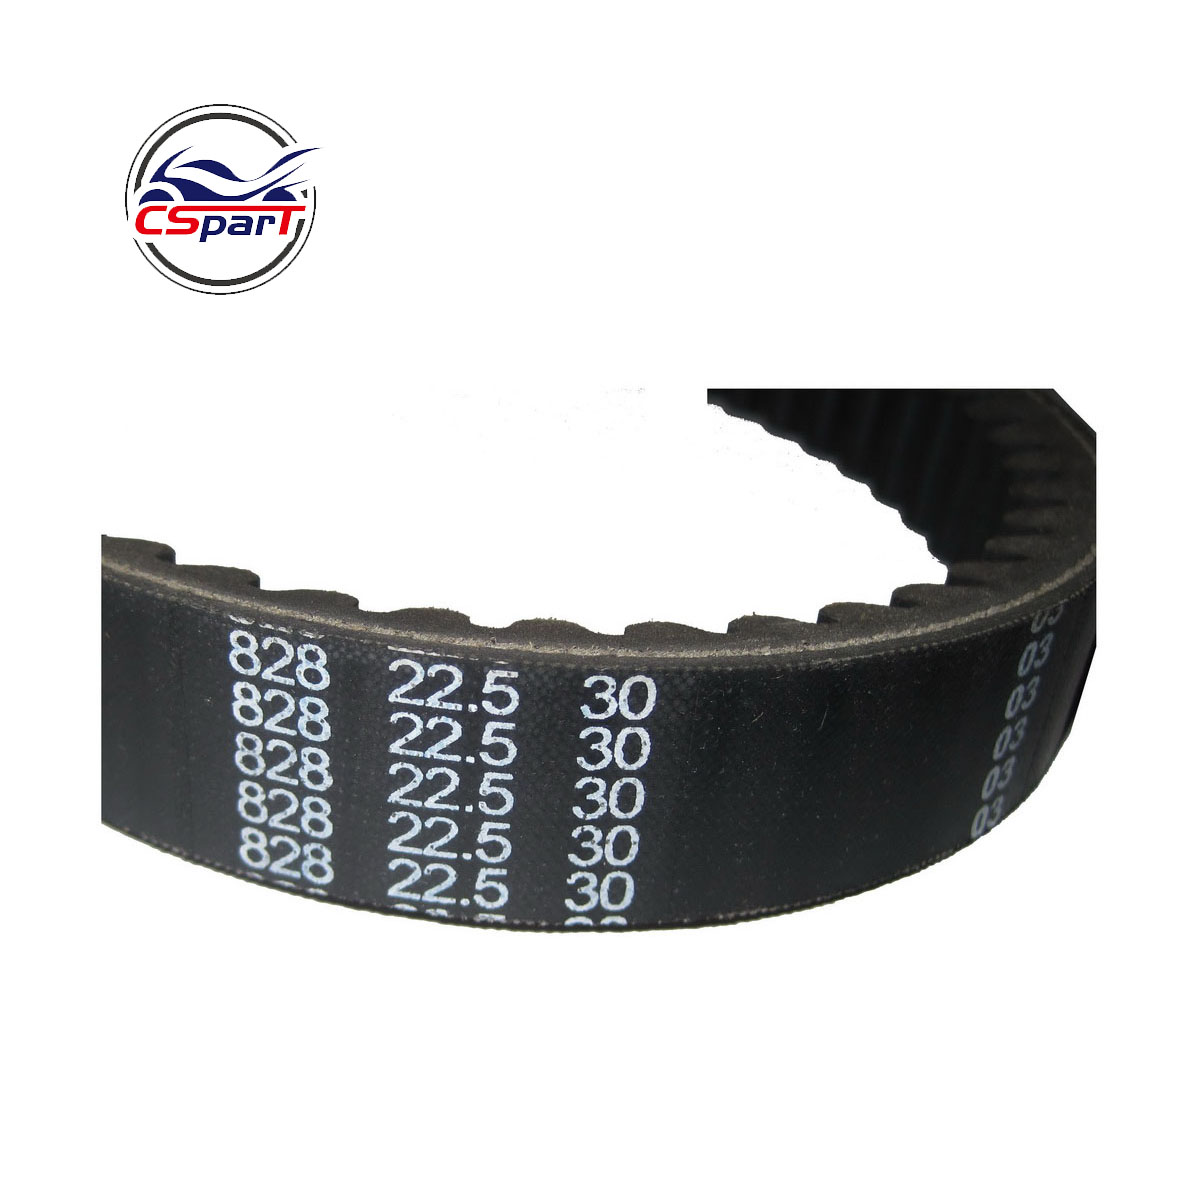 828 22.5 30 GATES PowerLink Belt CH250 CN250 Helix Elite Chinese Scooters